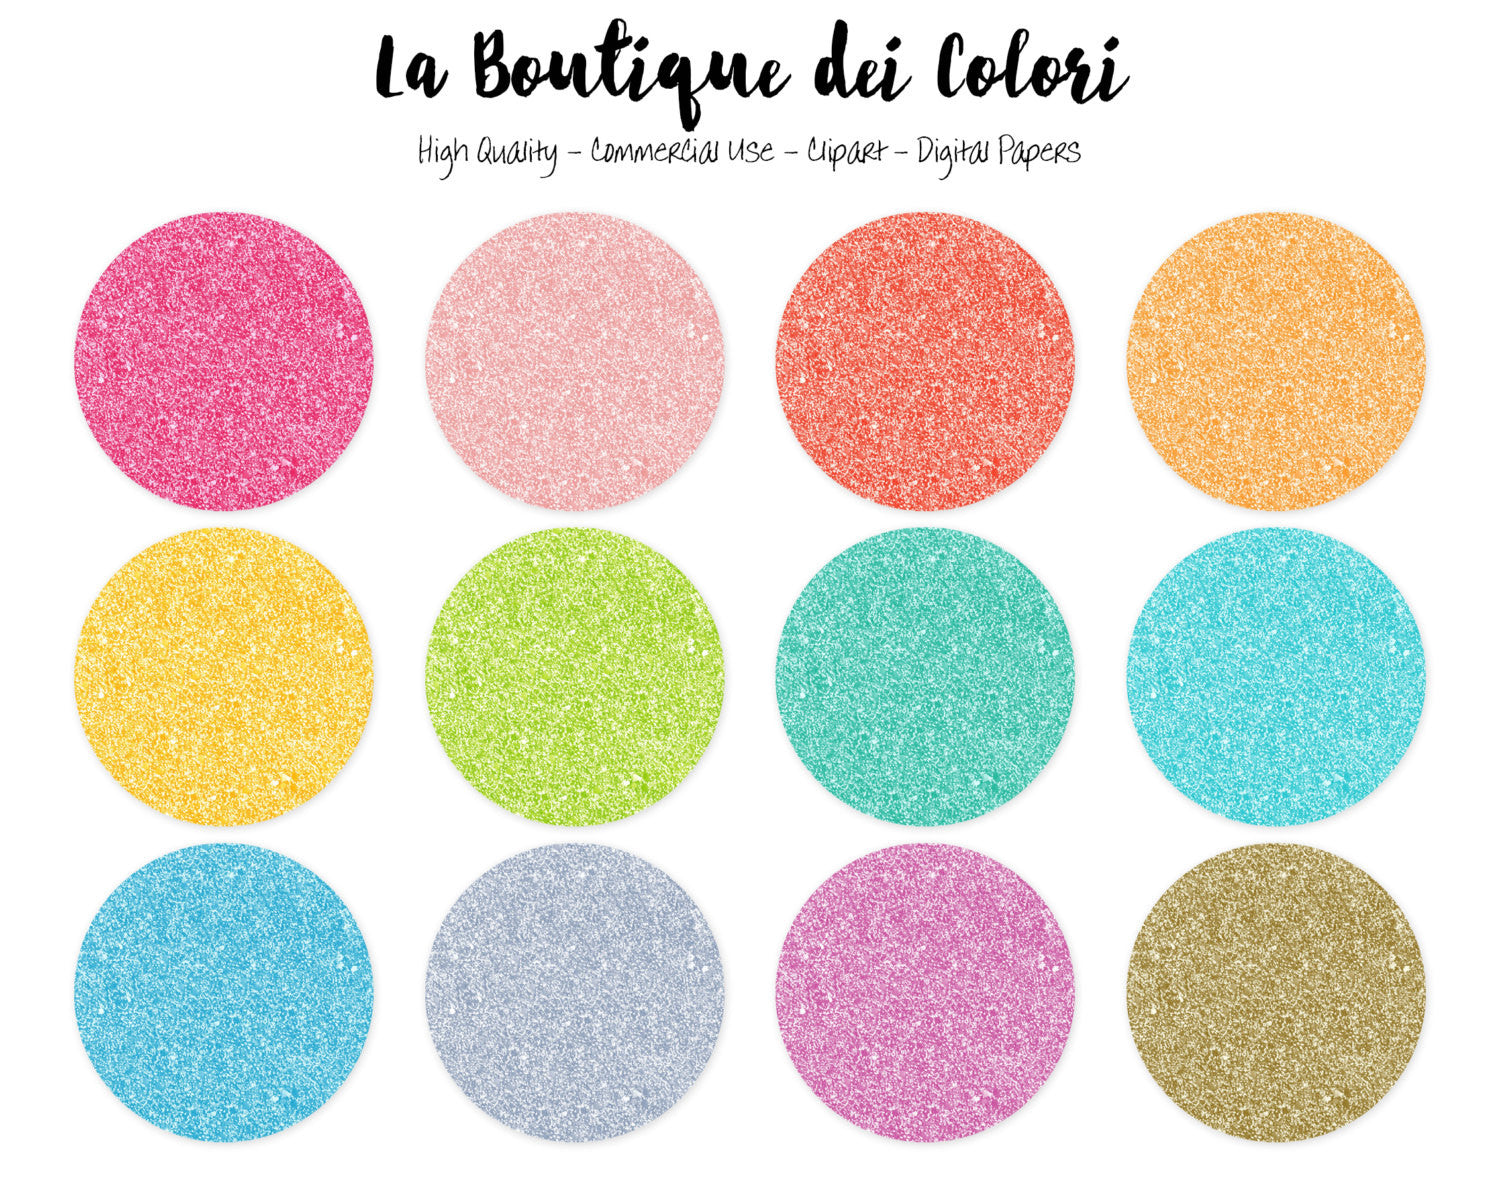 colorful glitter circles clipart la boutique dei colori